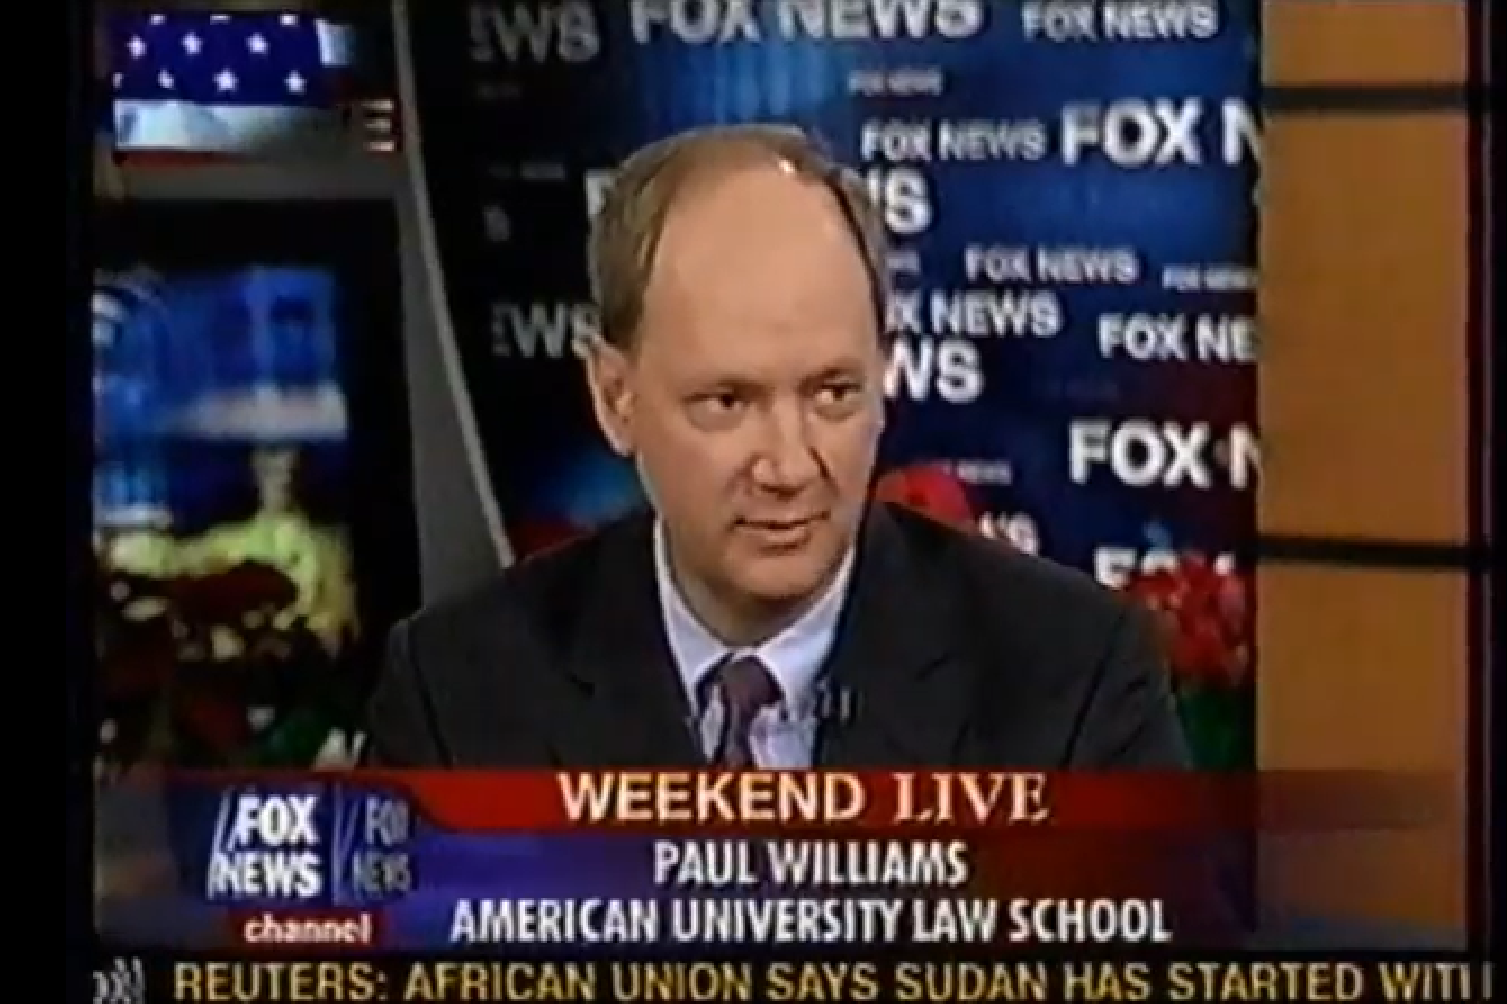 Dr. Paul Williams on Fox News discussing the Saddam Hussein trial.